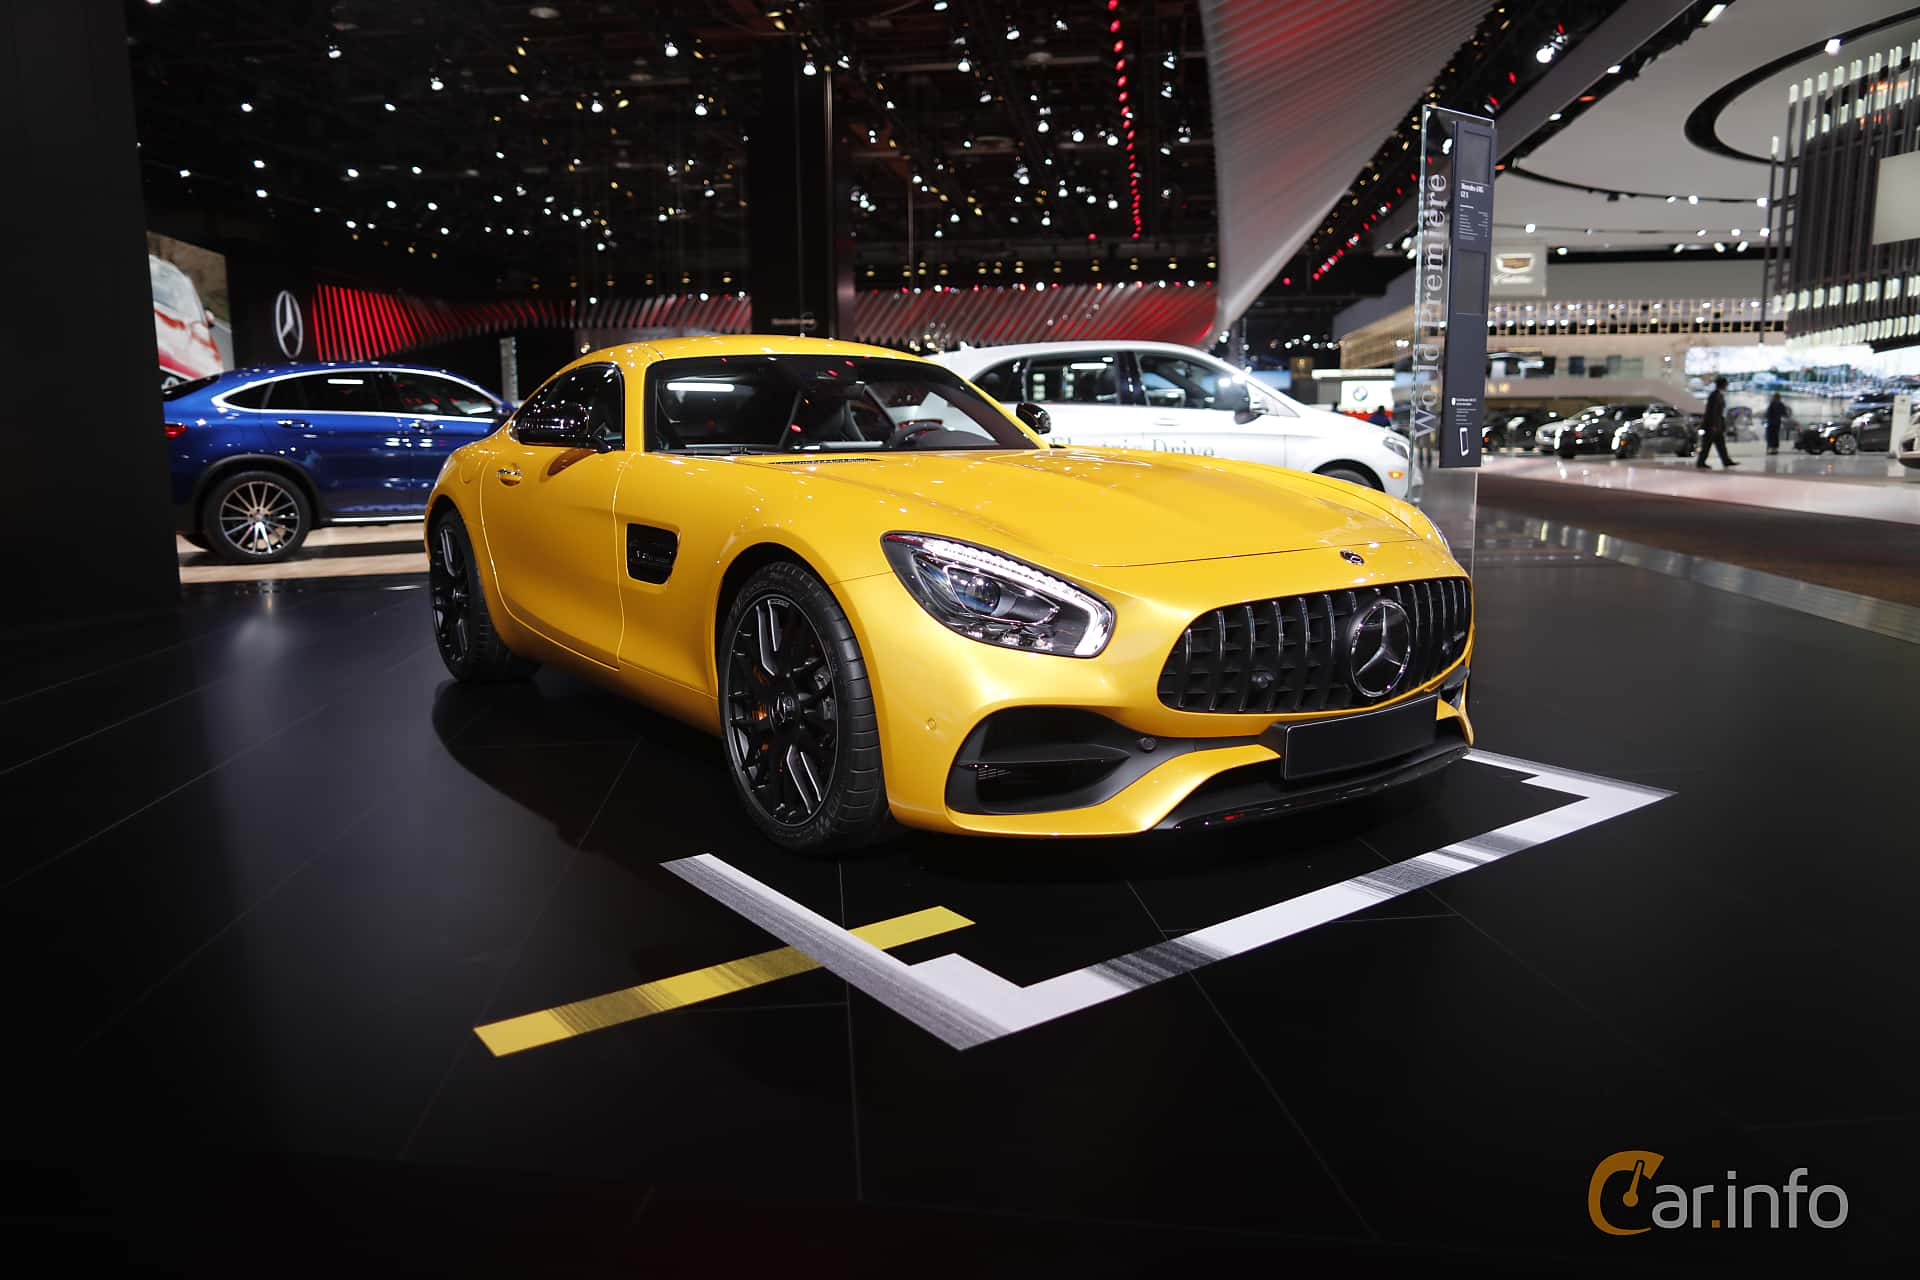 Mercedes-Benz AMG GT S 4.0 V8 AMG Speedshift DCT, 510hp, 2017 at North American International Auto Show 2017